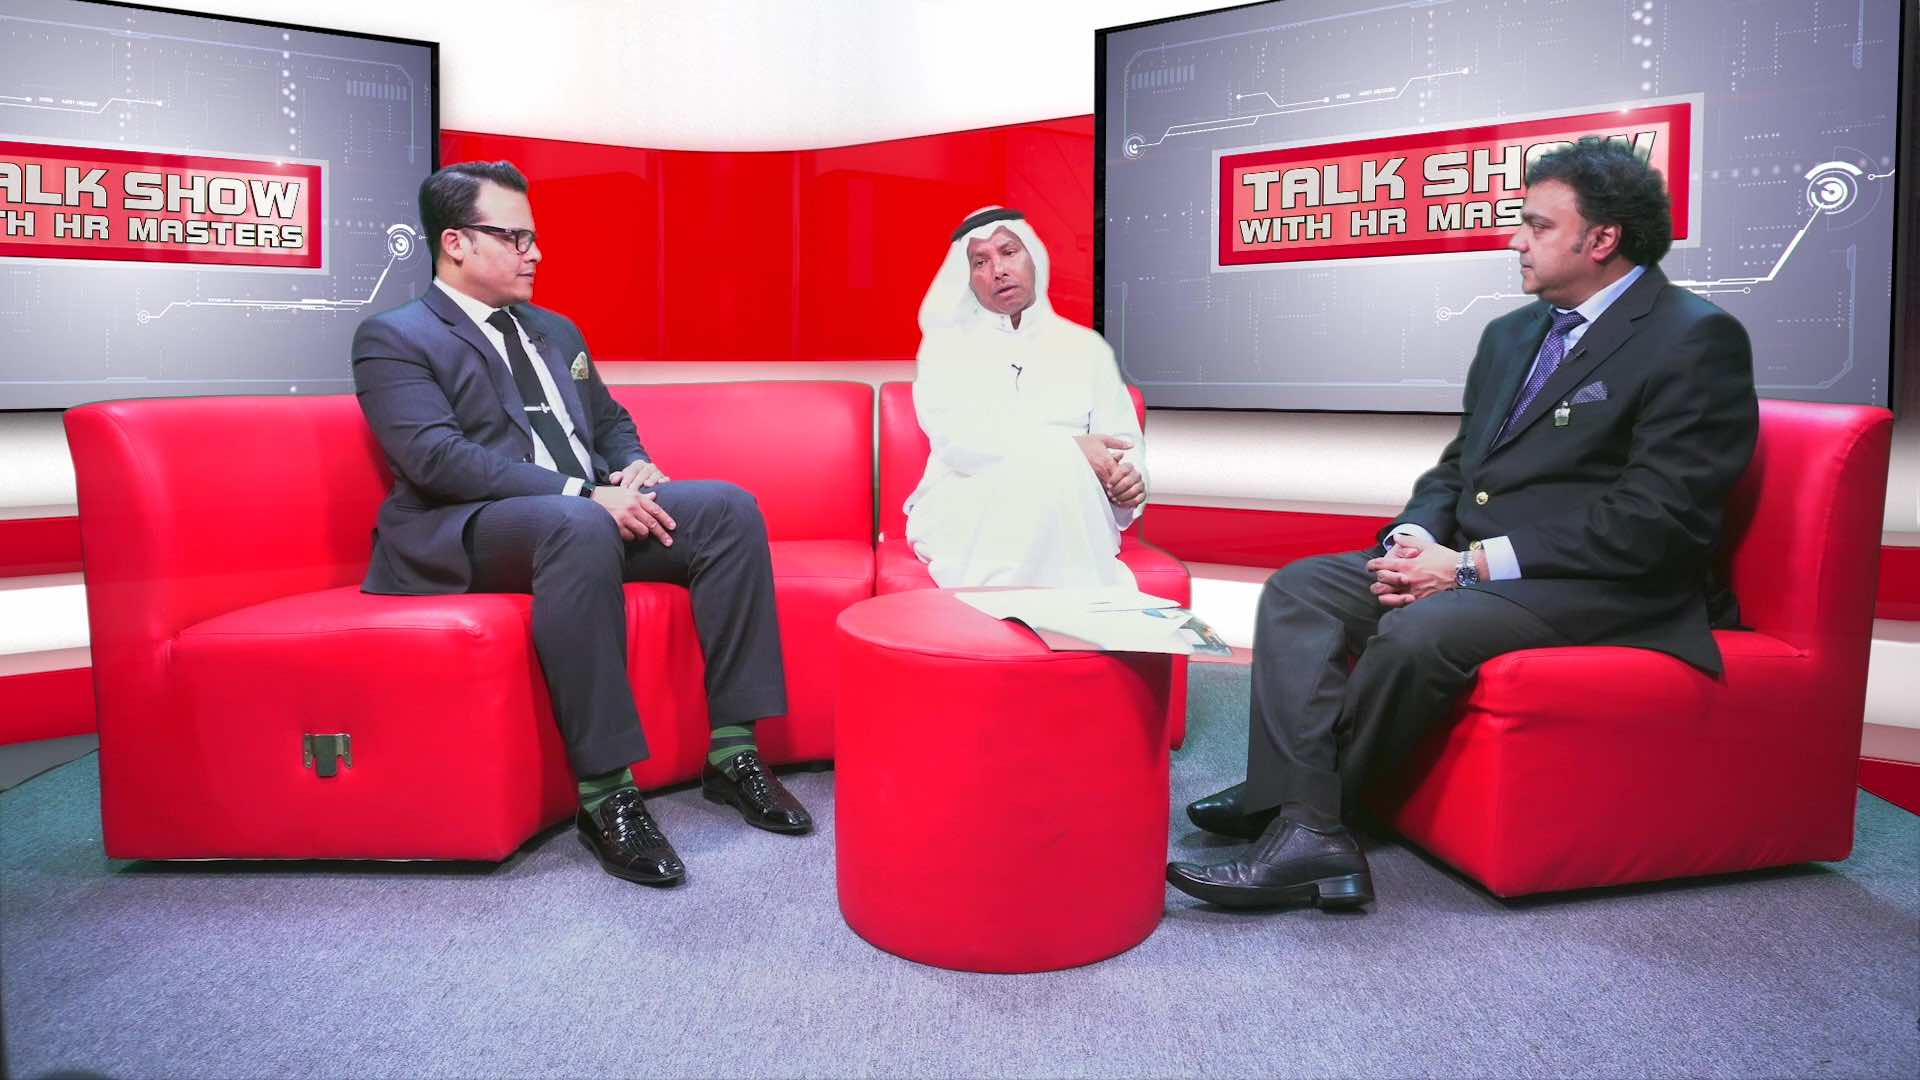 Talkshow With Masters_Dr. Ibrahim Al Thobaiti, Dr. Arif Khan and Dr. Vinod Thampi_Part-1